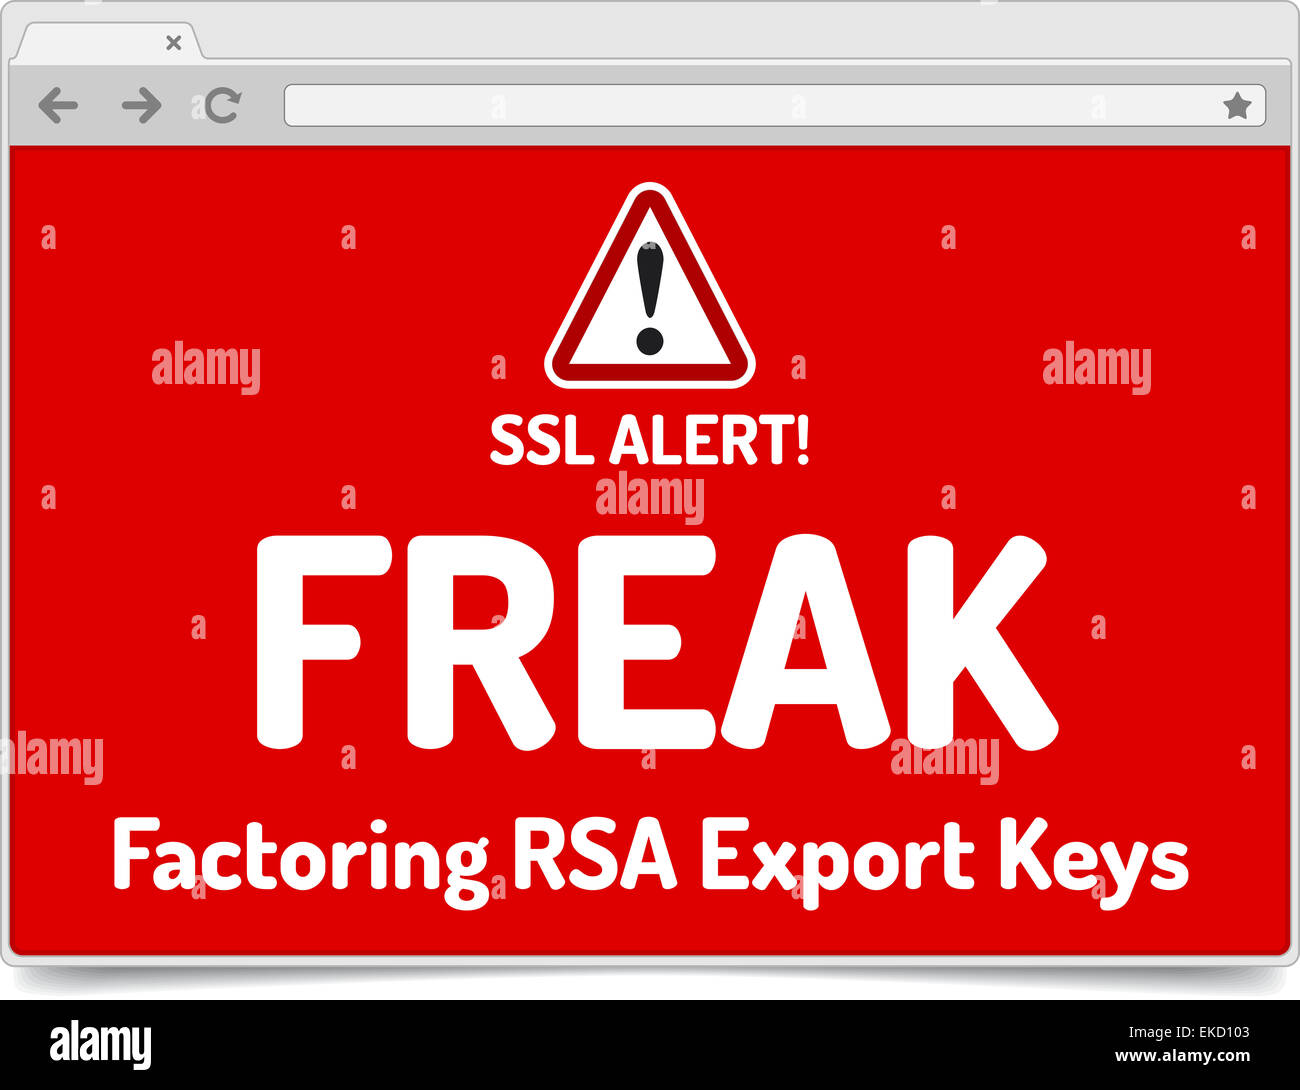 FREAK - Factoring RSA Export Keys Security - Warning in simple opened browser with shadow on white background - Stock Image